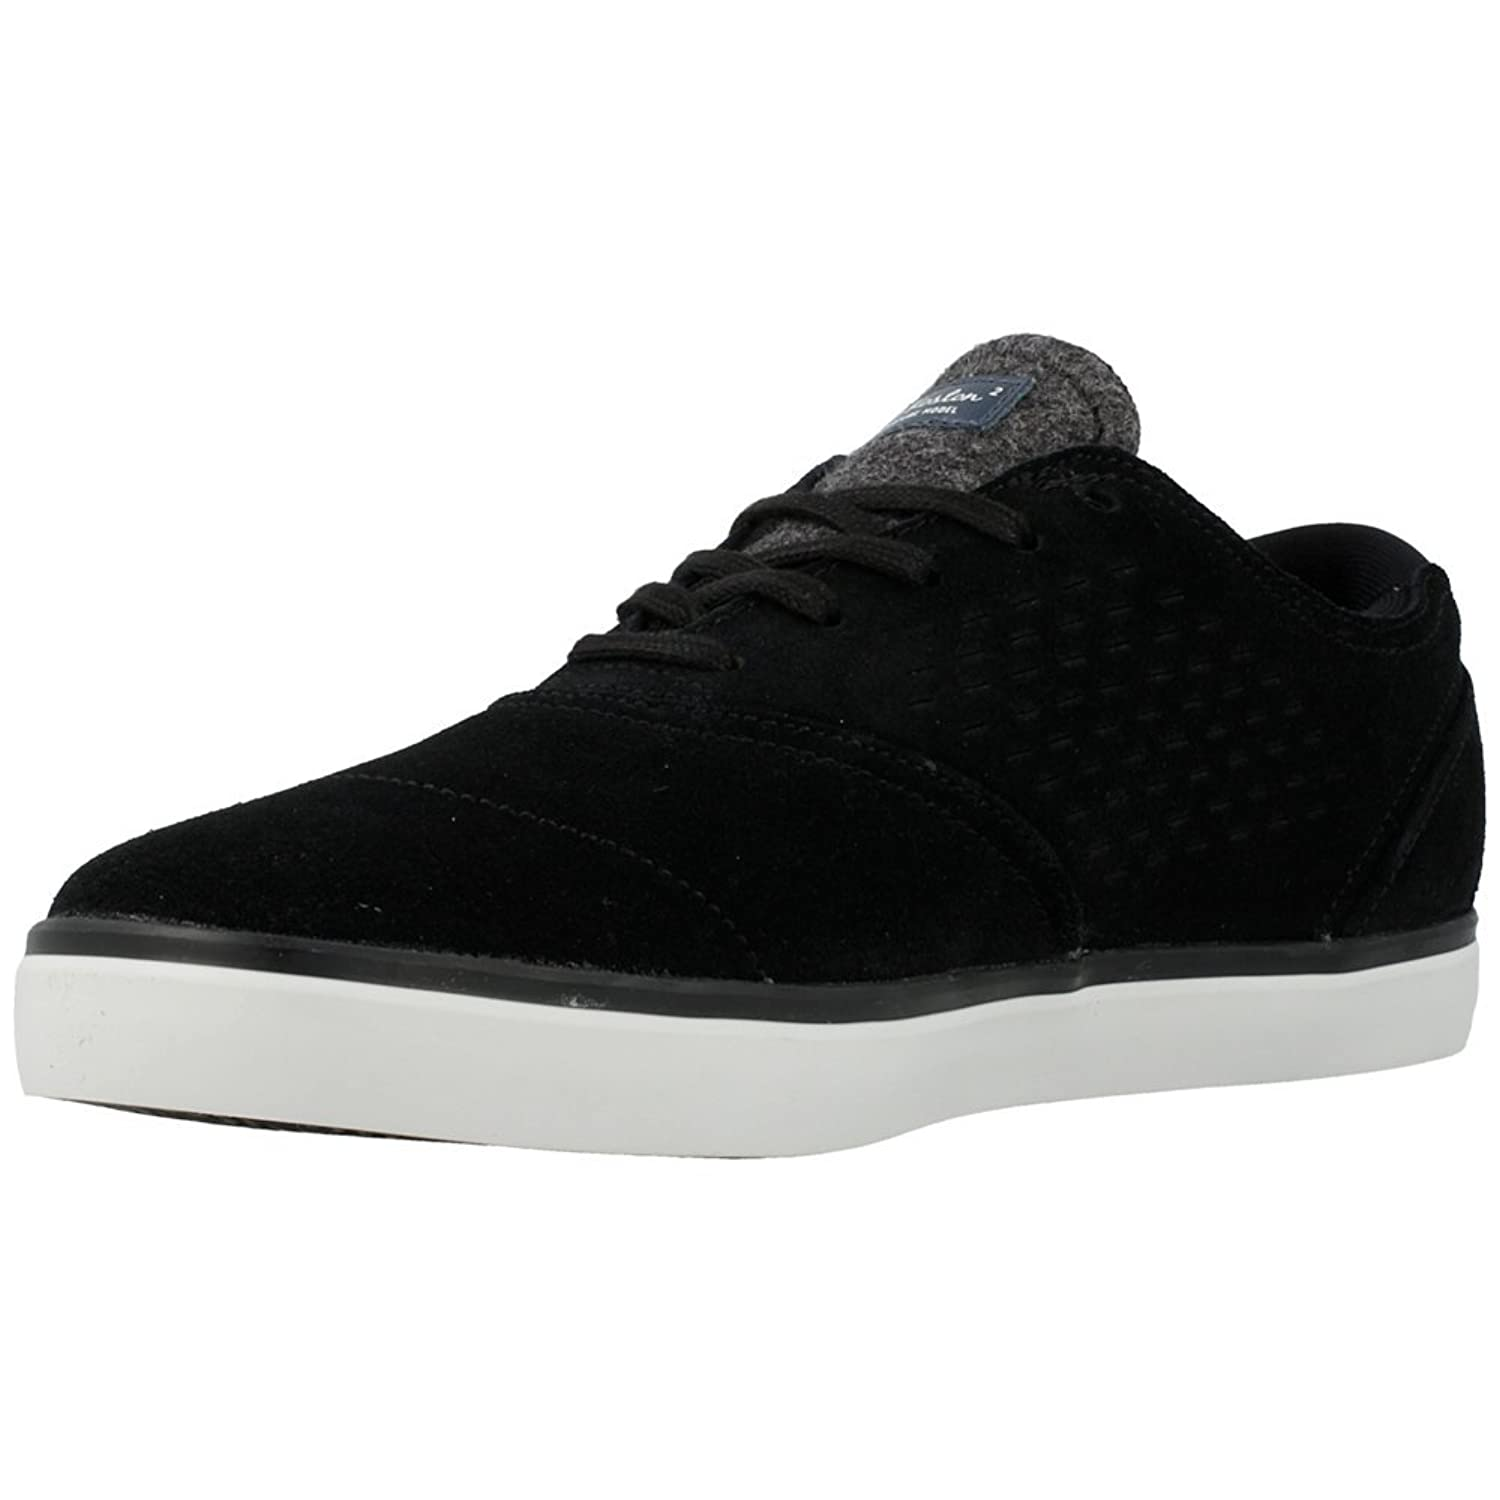 super popular 9ae87 4bac5 902807 6e0c0b c0e43 47a35 low cost nike eric koston 2 lr color blanco negro  size 42.0 7670a e4cca ...